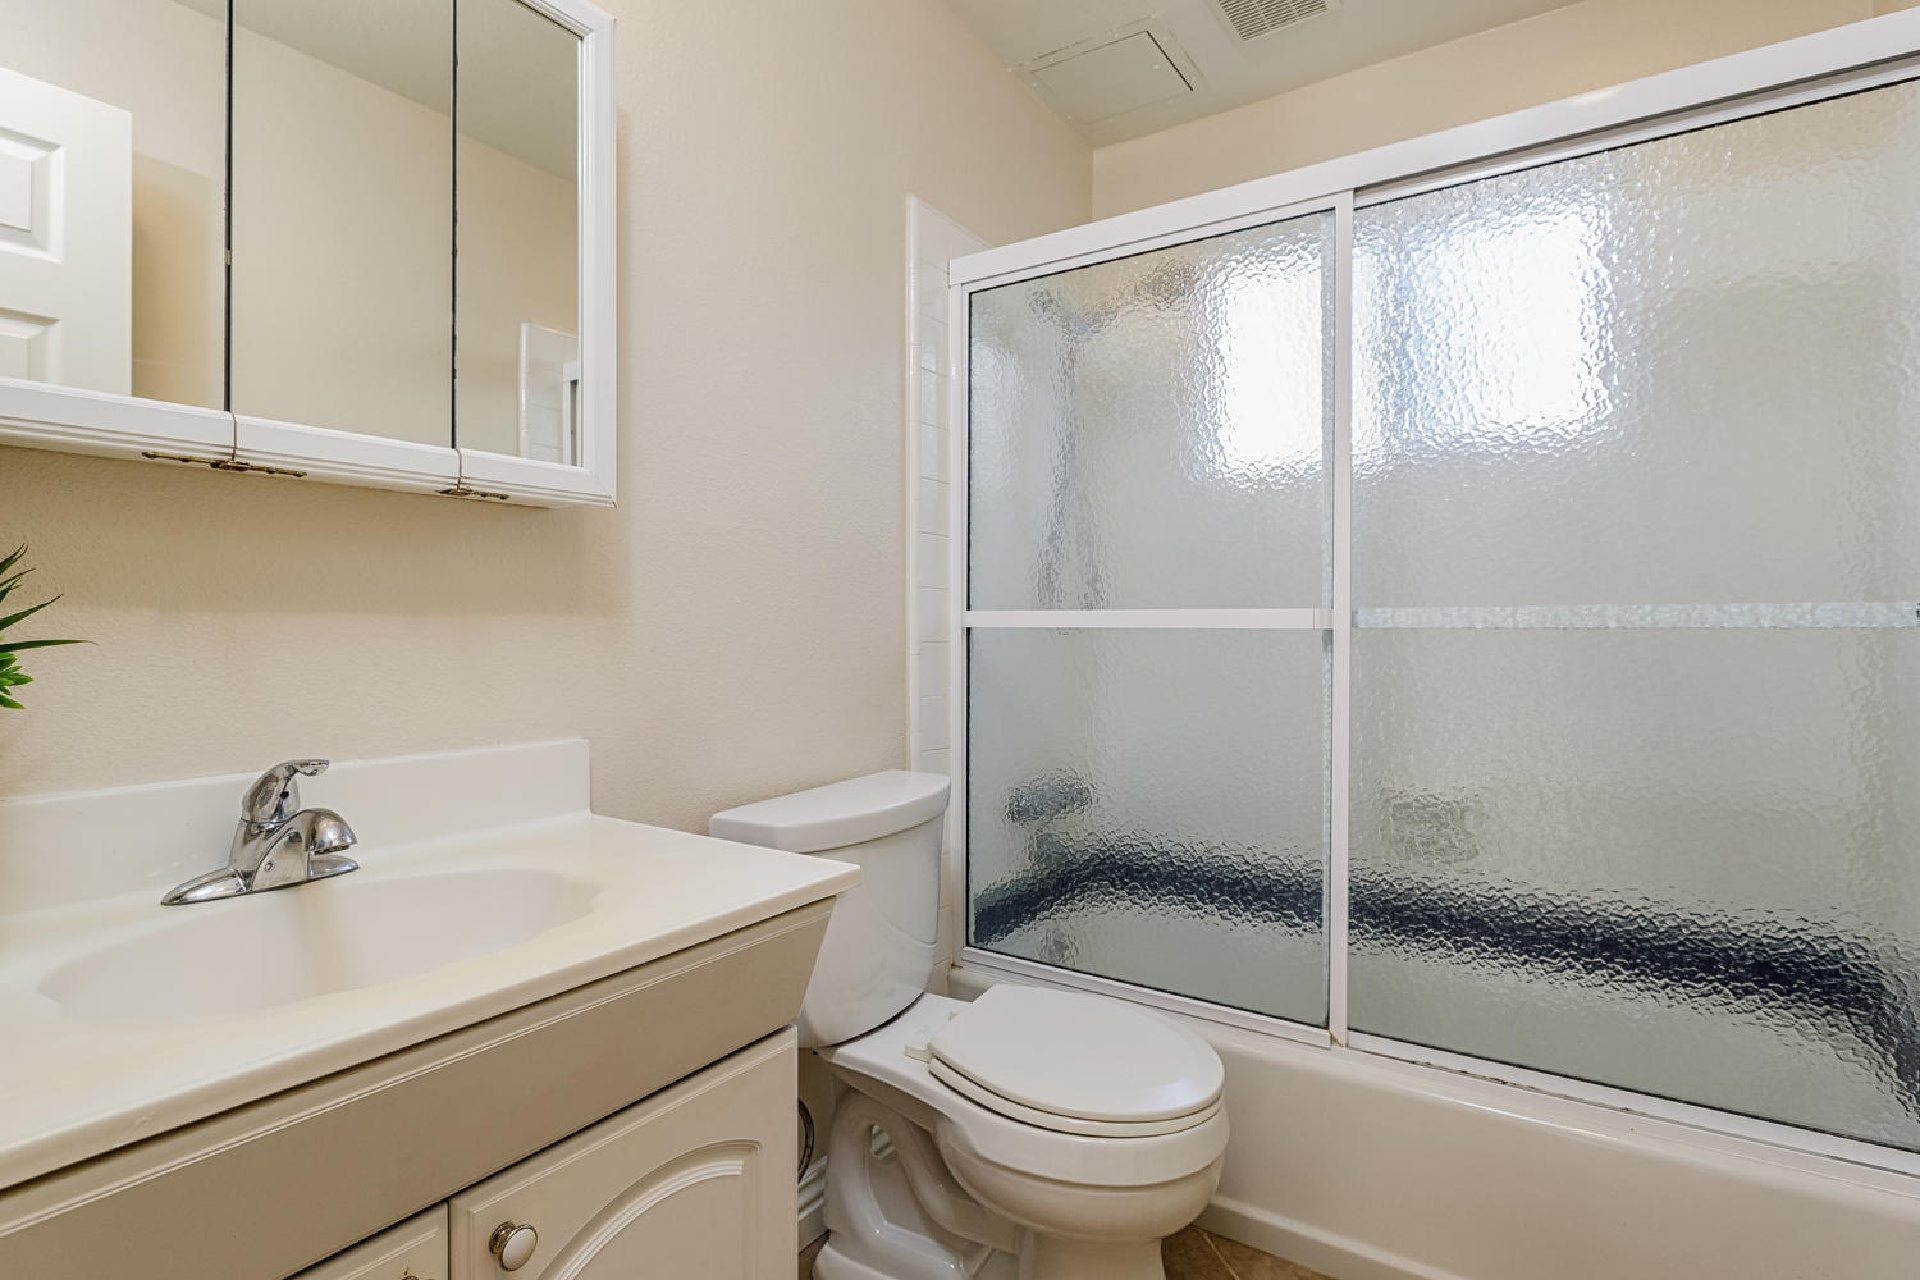 https://www.addressrealestate.com/media/images/blogs/38/2/b_14-1408-ocean-dr-oxnard-ca-93035-mls-size-019-28-bathroom-2-1500x1000-72dpi.jpg